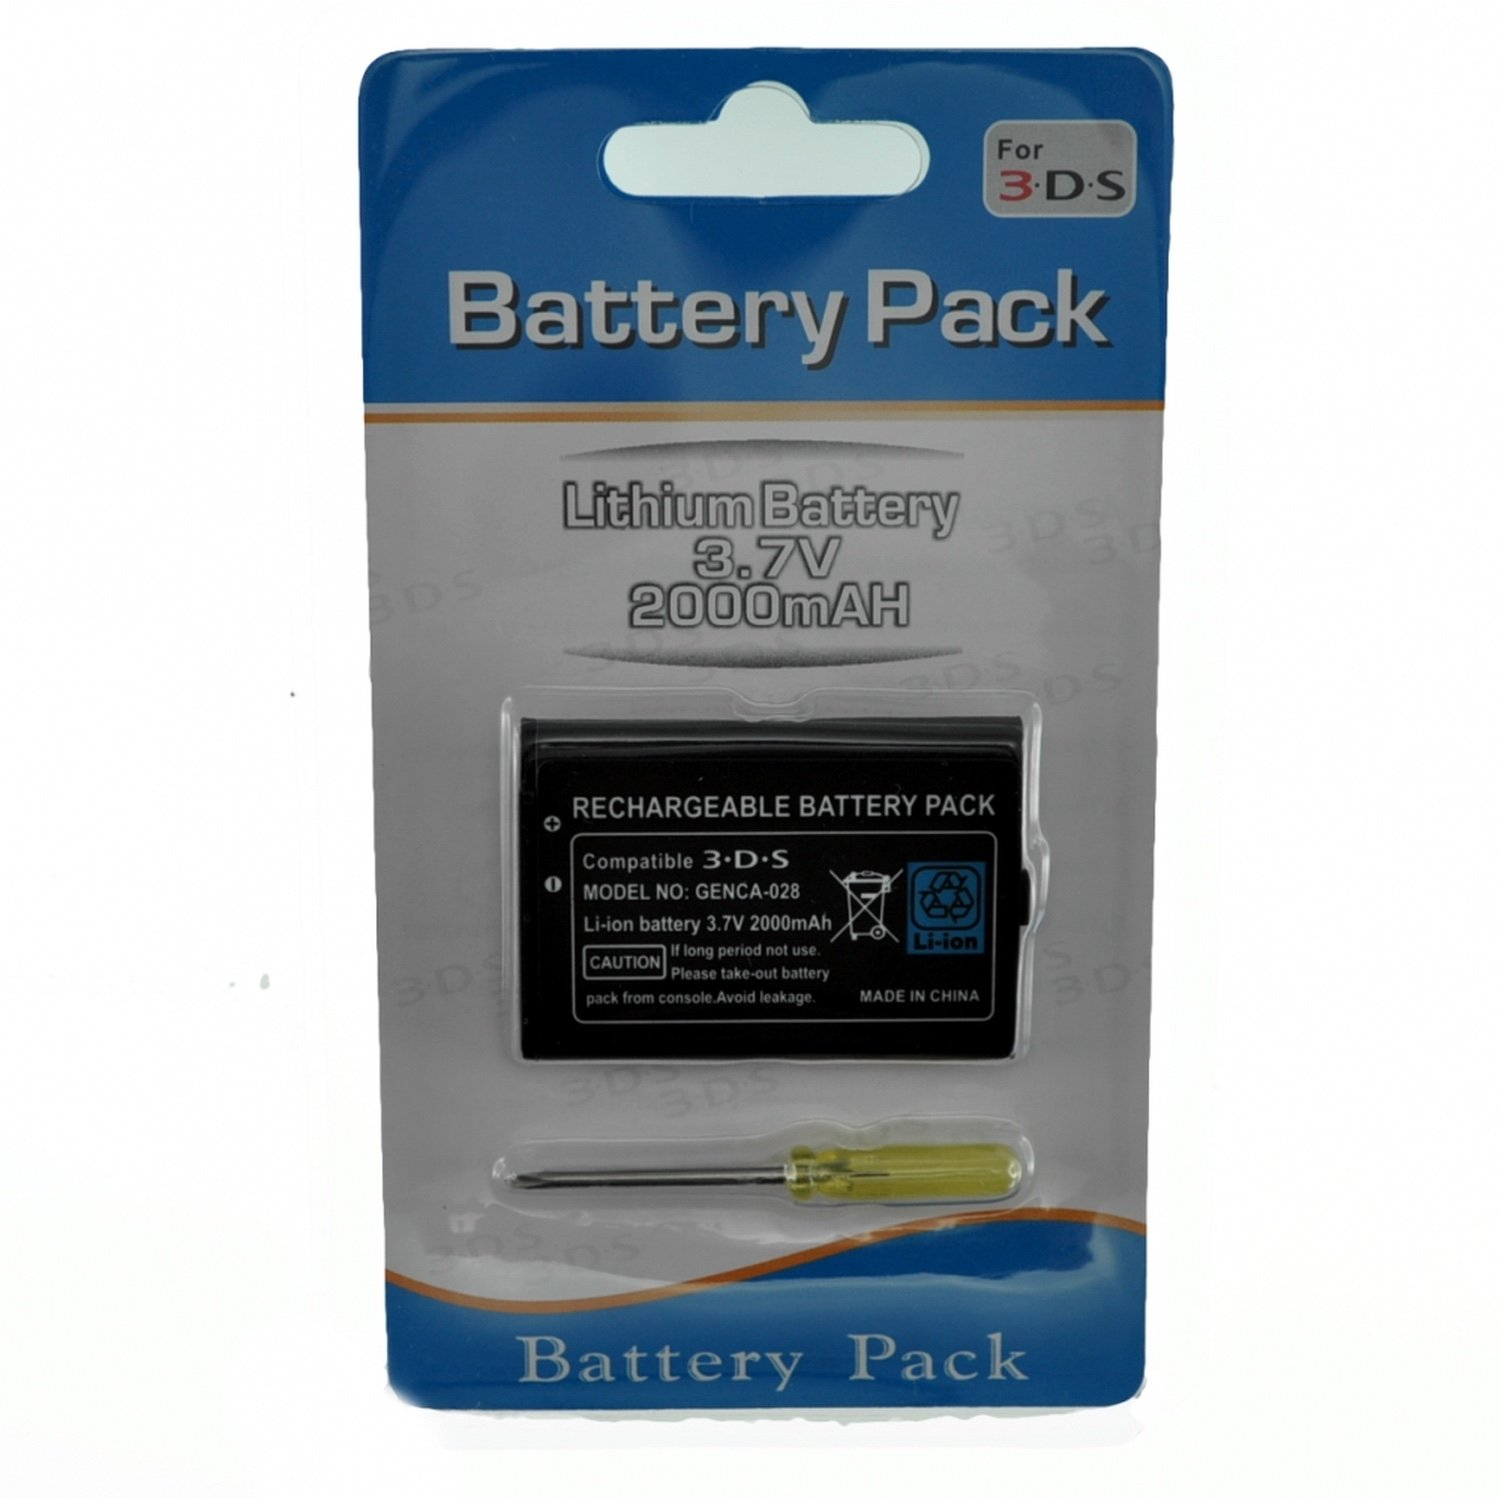 NINTENDO 3DS Rechargeable Li-ion Battery 3,7v 2000mah